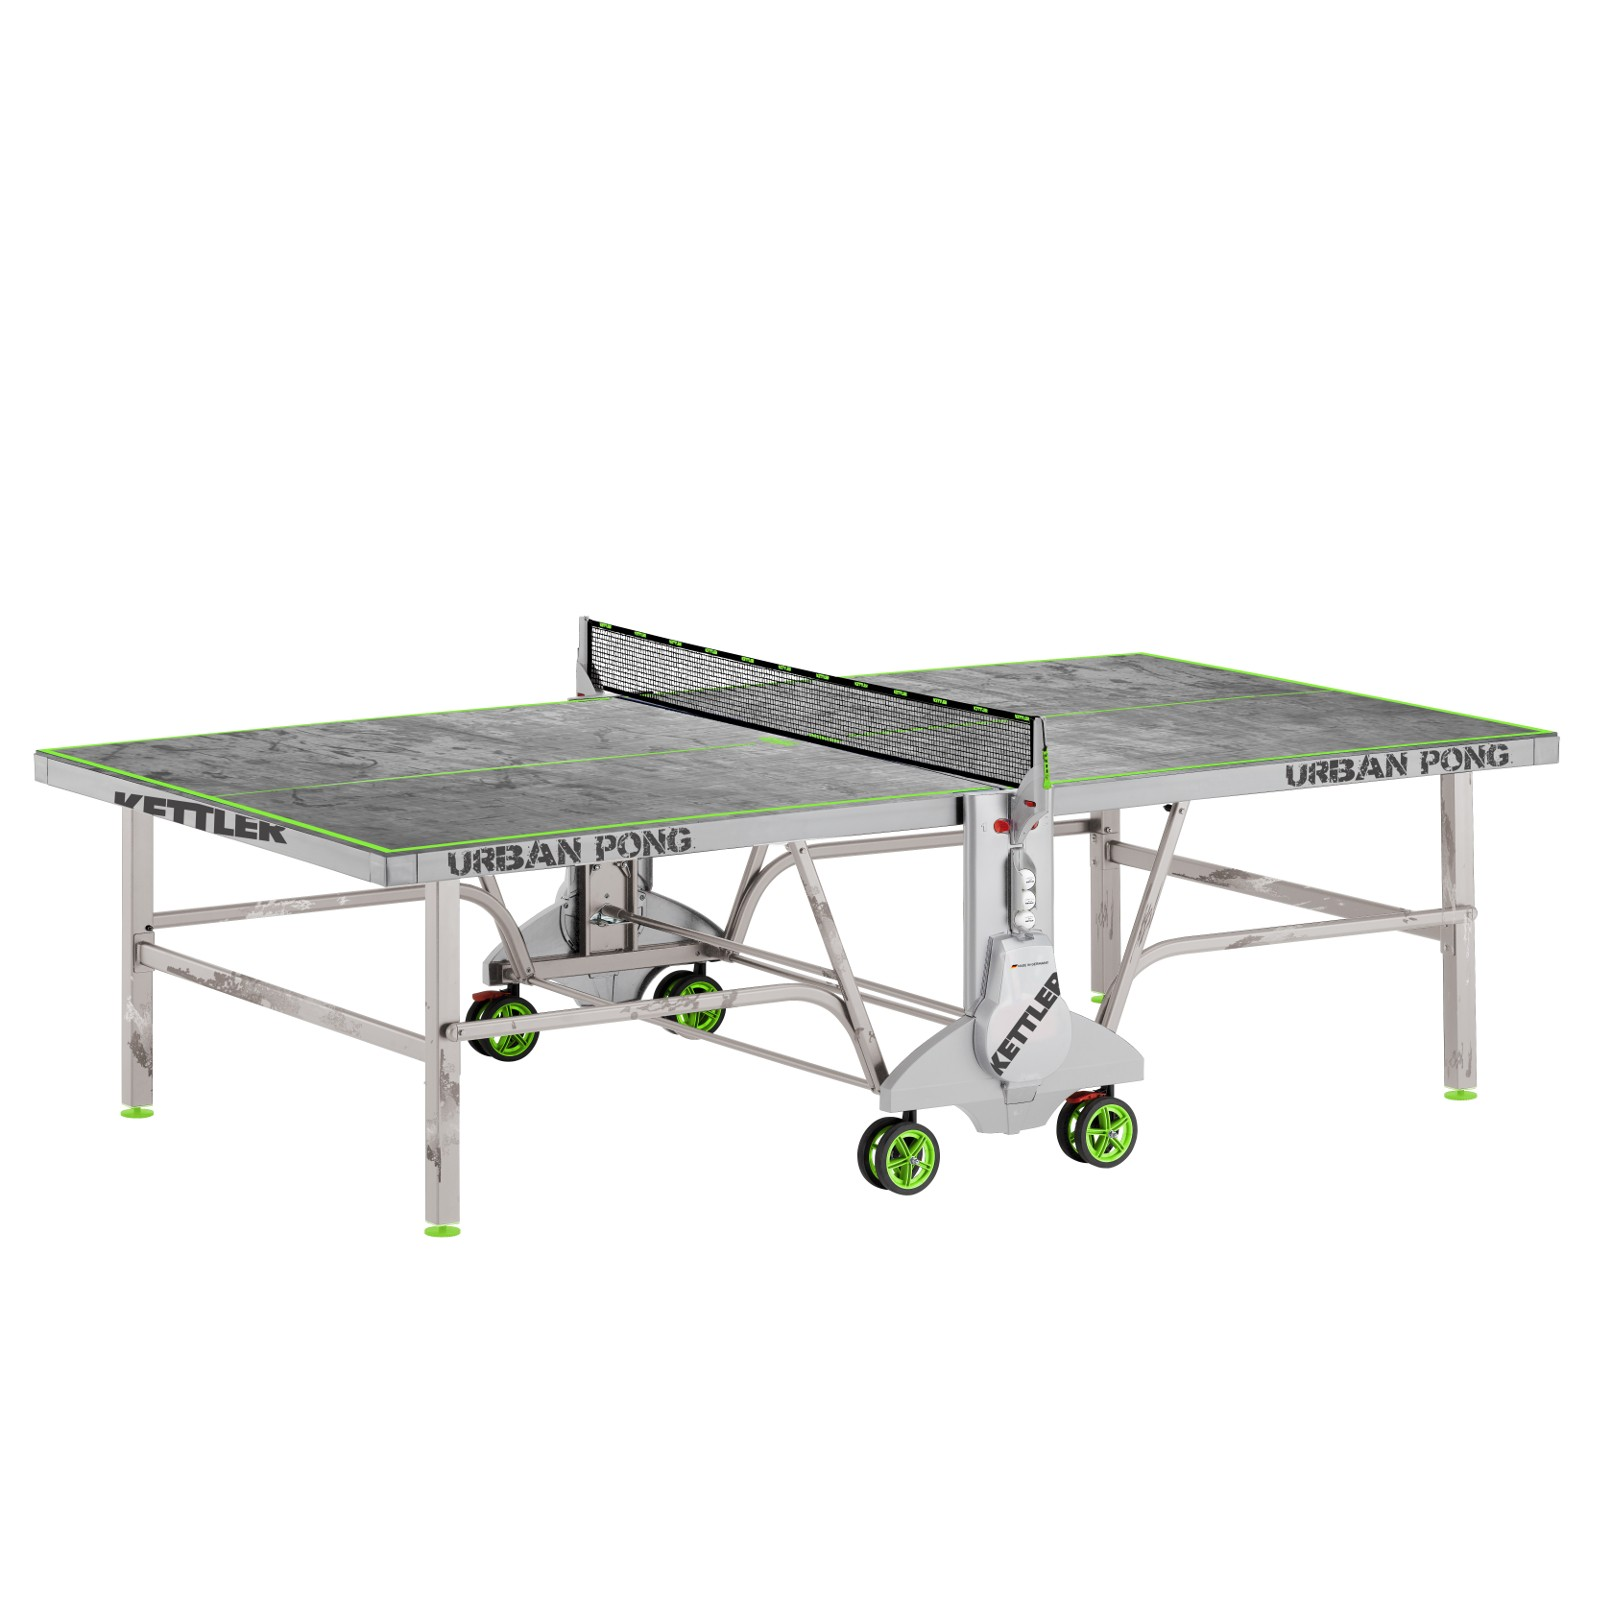 Kettler table tennis table urban pong osta edullisesti for Table kettler